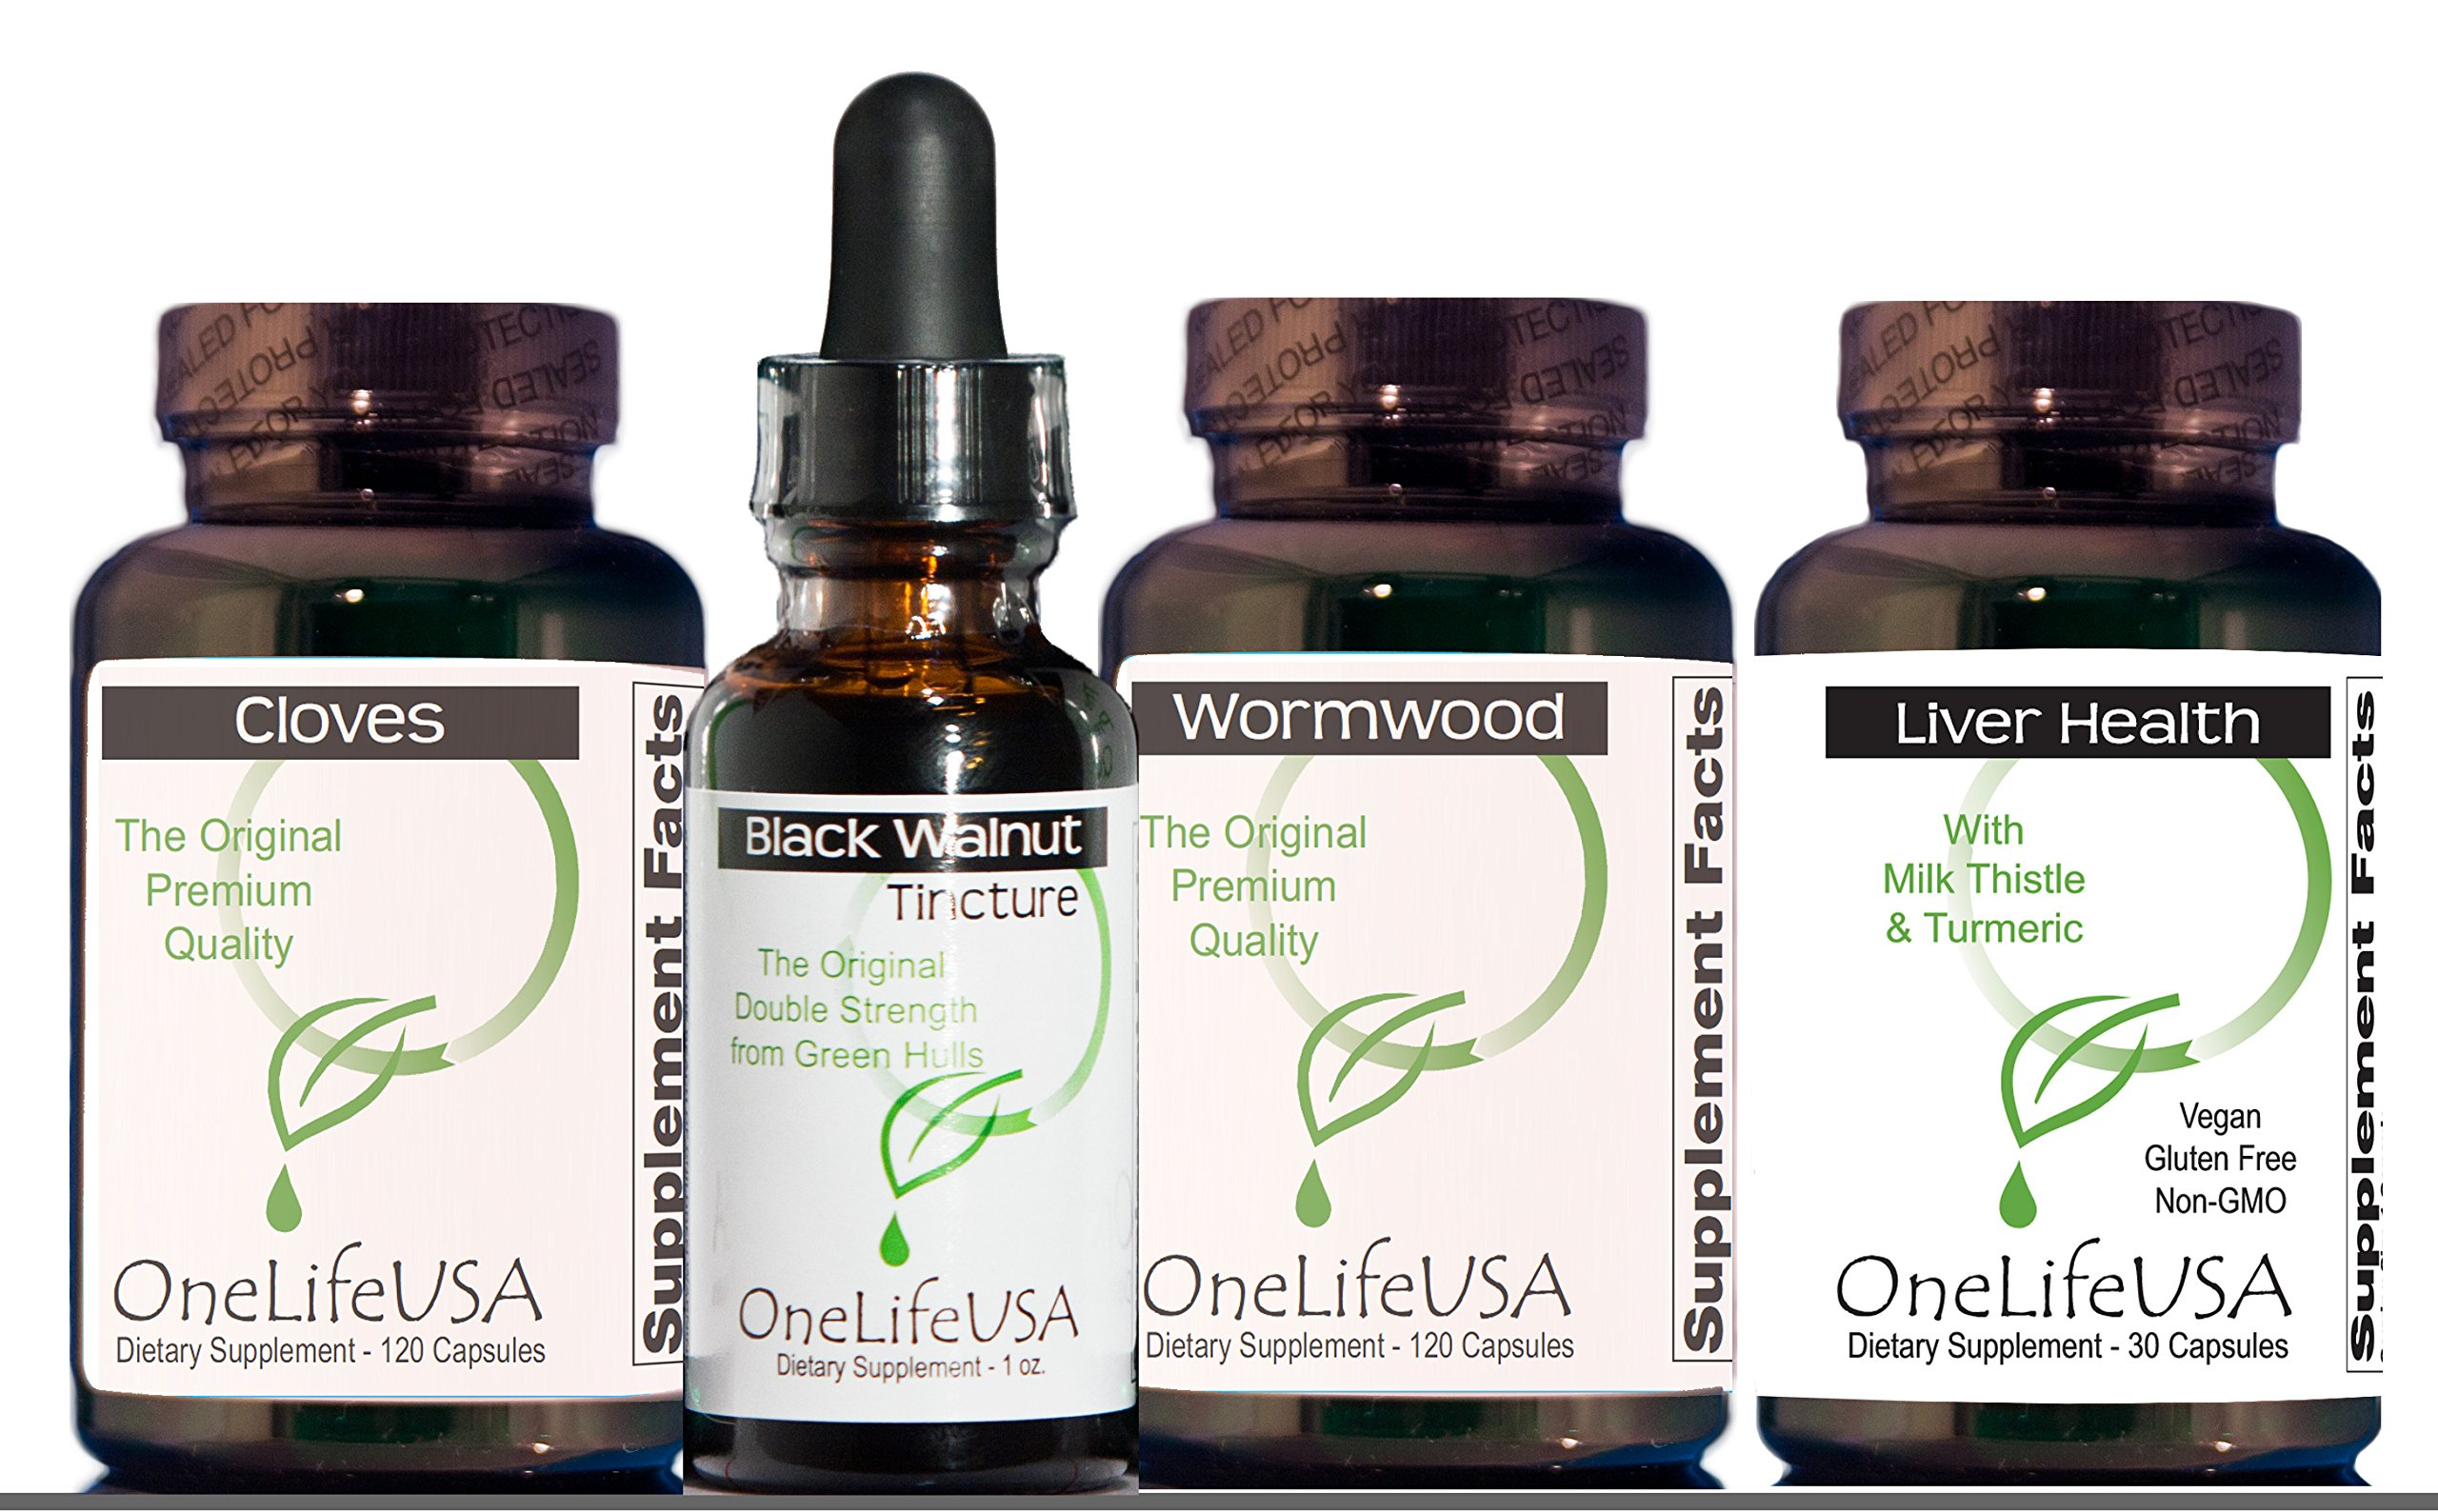 Original Para Kit Plus Liver Health. Non-GMO